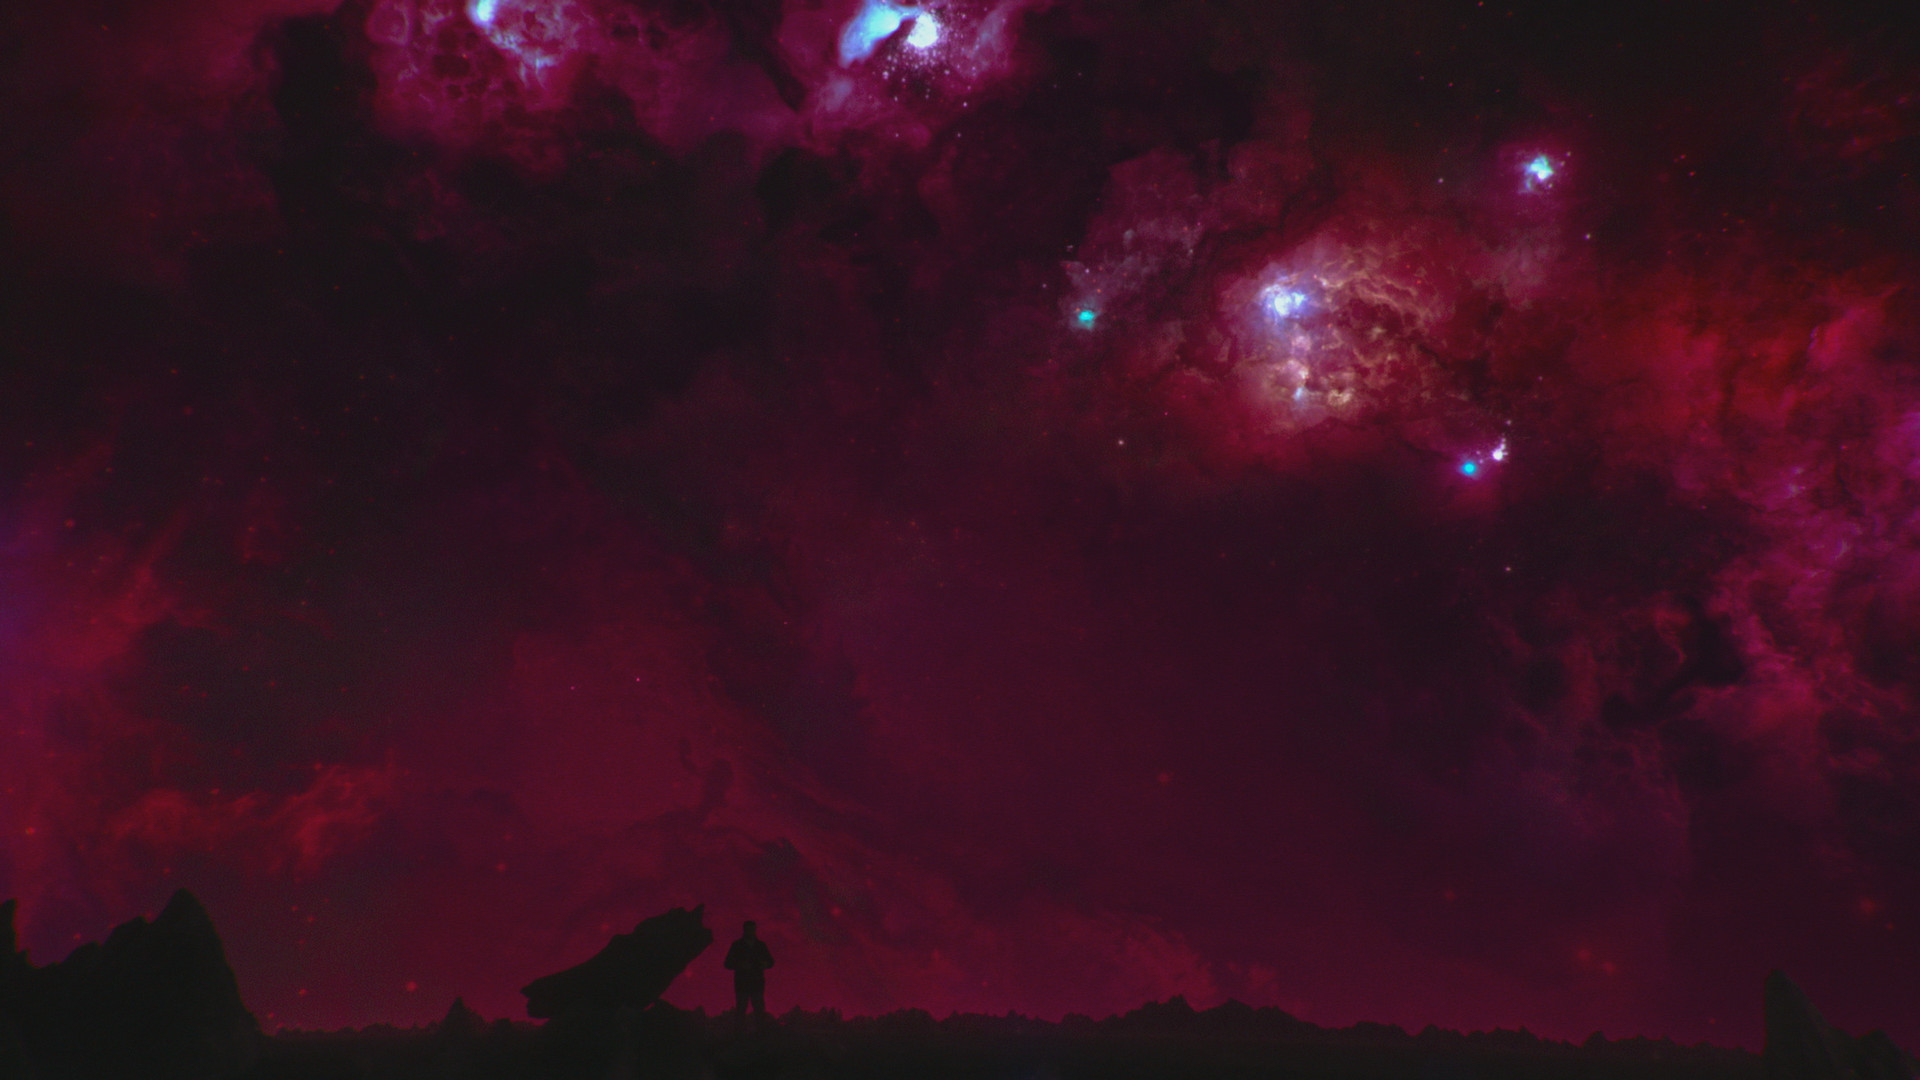 A flashback to an alien planet in the Milky Way 11 billion years ago, as host Neil deGrasse Tyson witnesses stars being born. COSMOS: POSSIBLE WORLDS premieres March 9, 2020 on National Geographic. (Cosmos Studios)